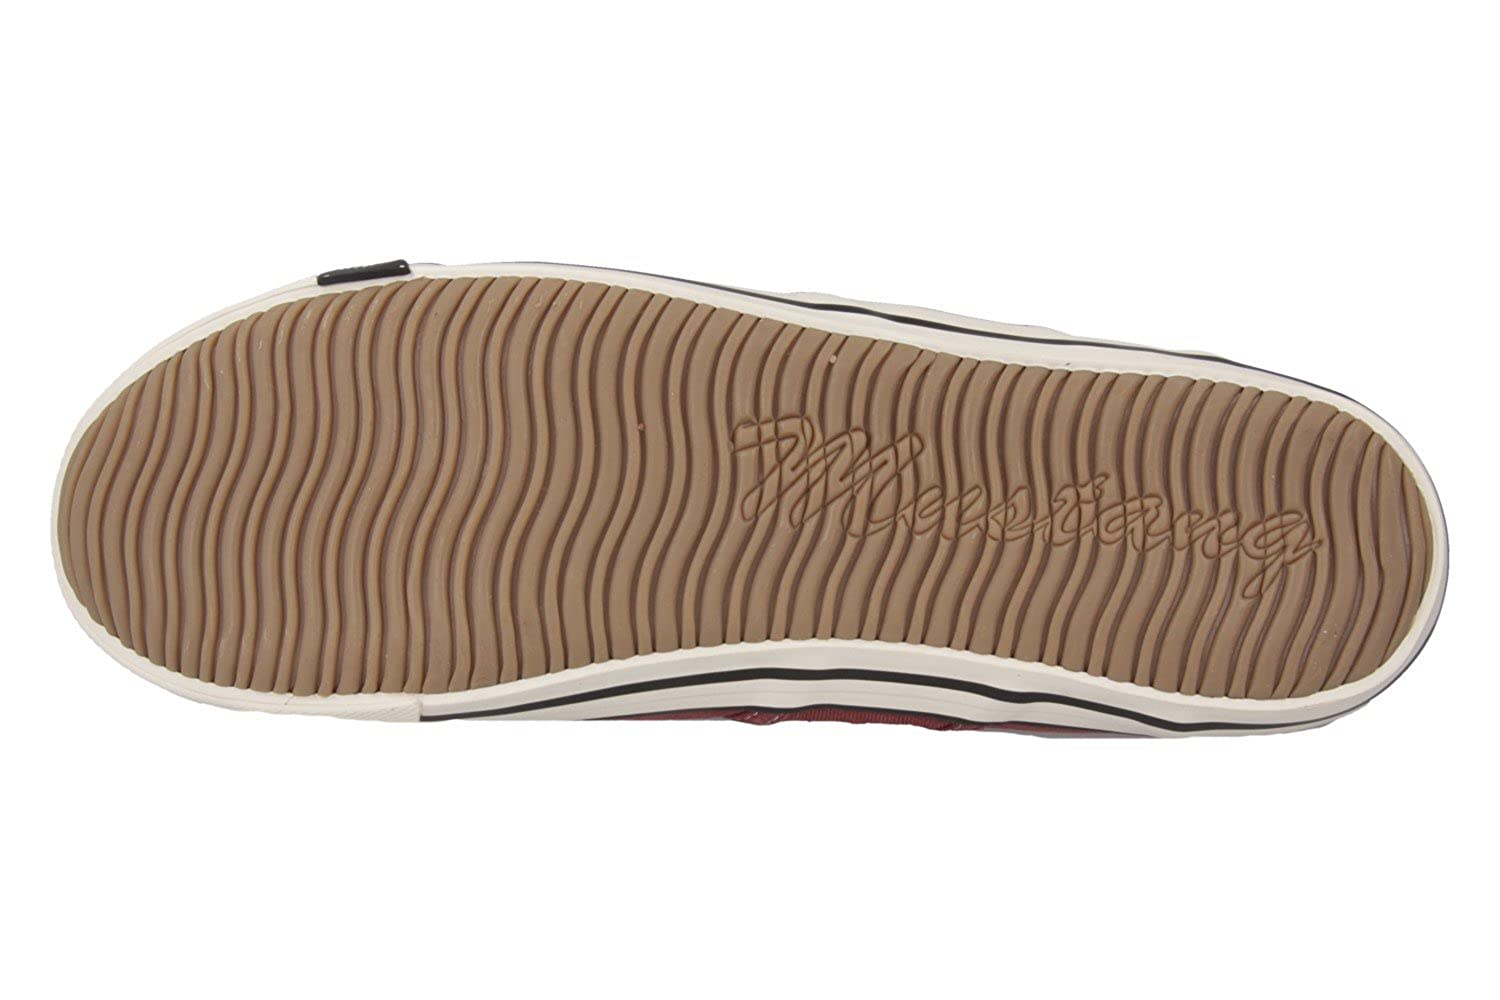 Chaussons Doubl/é Chaud Femme Mustang 1099-401-55